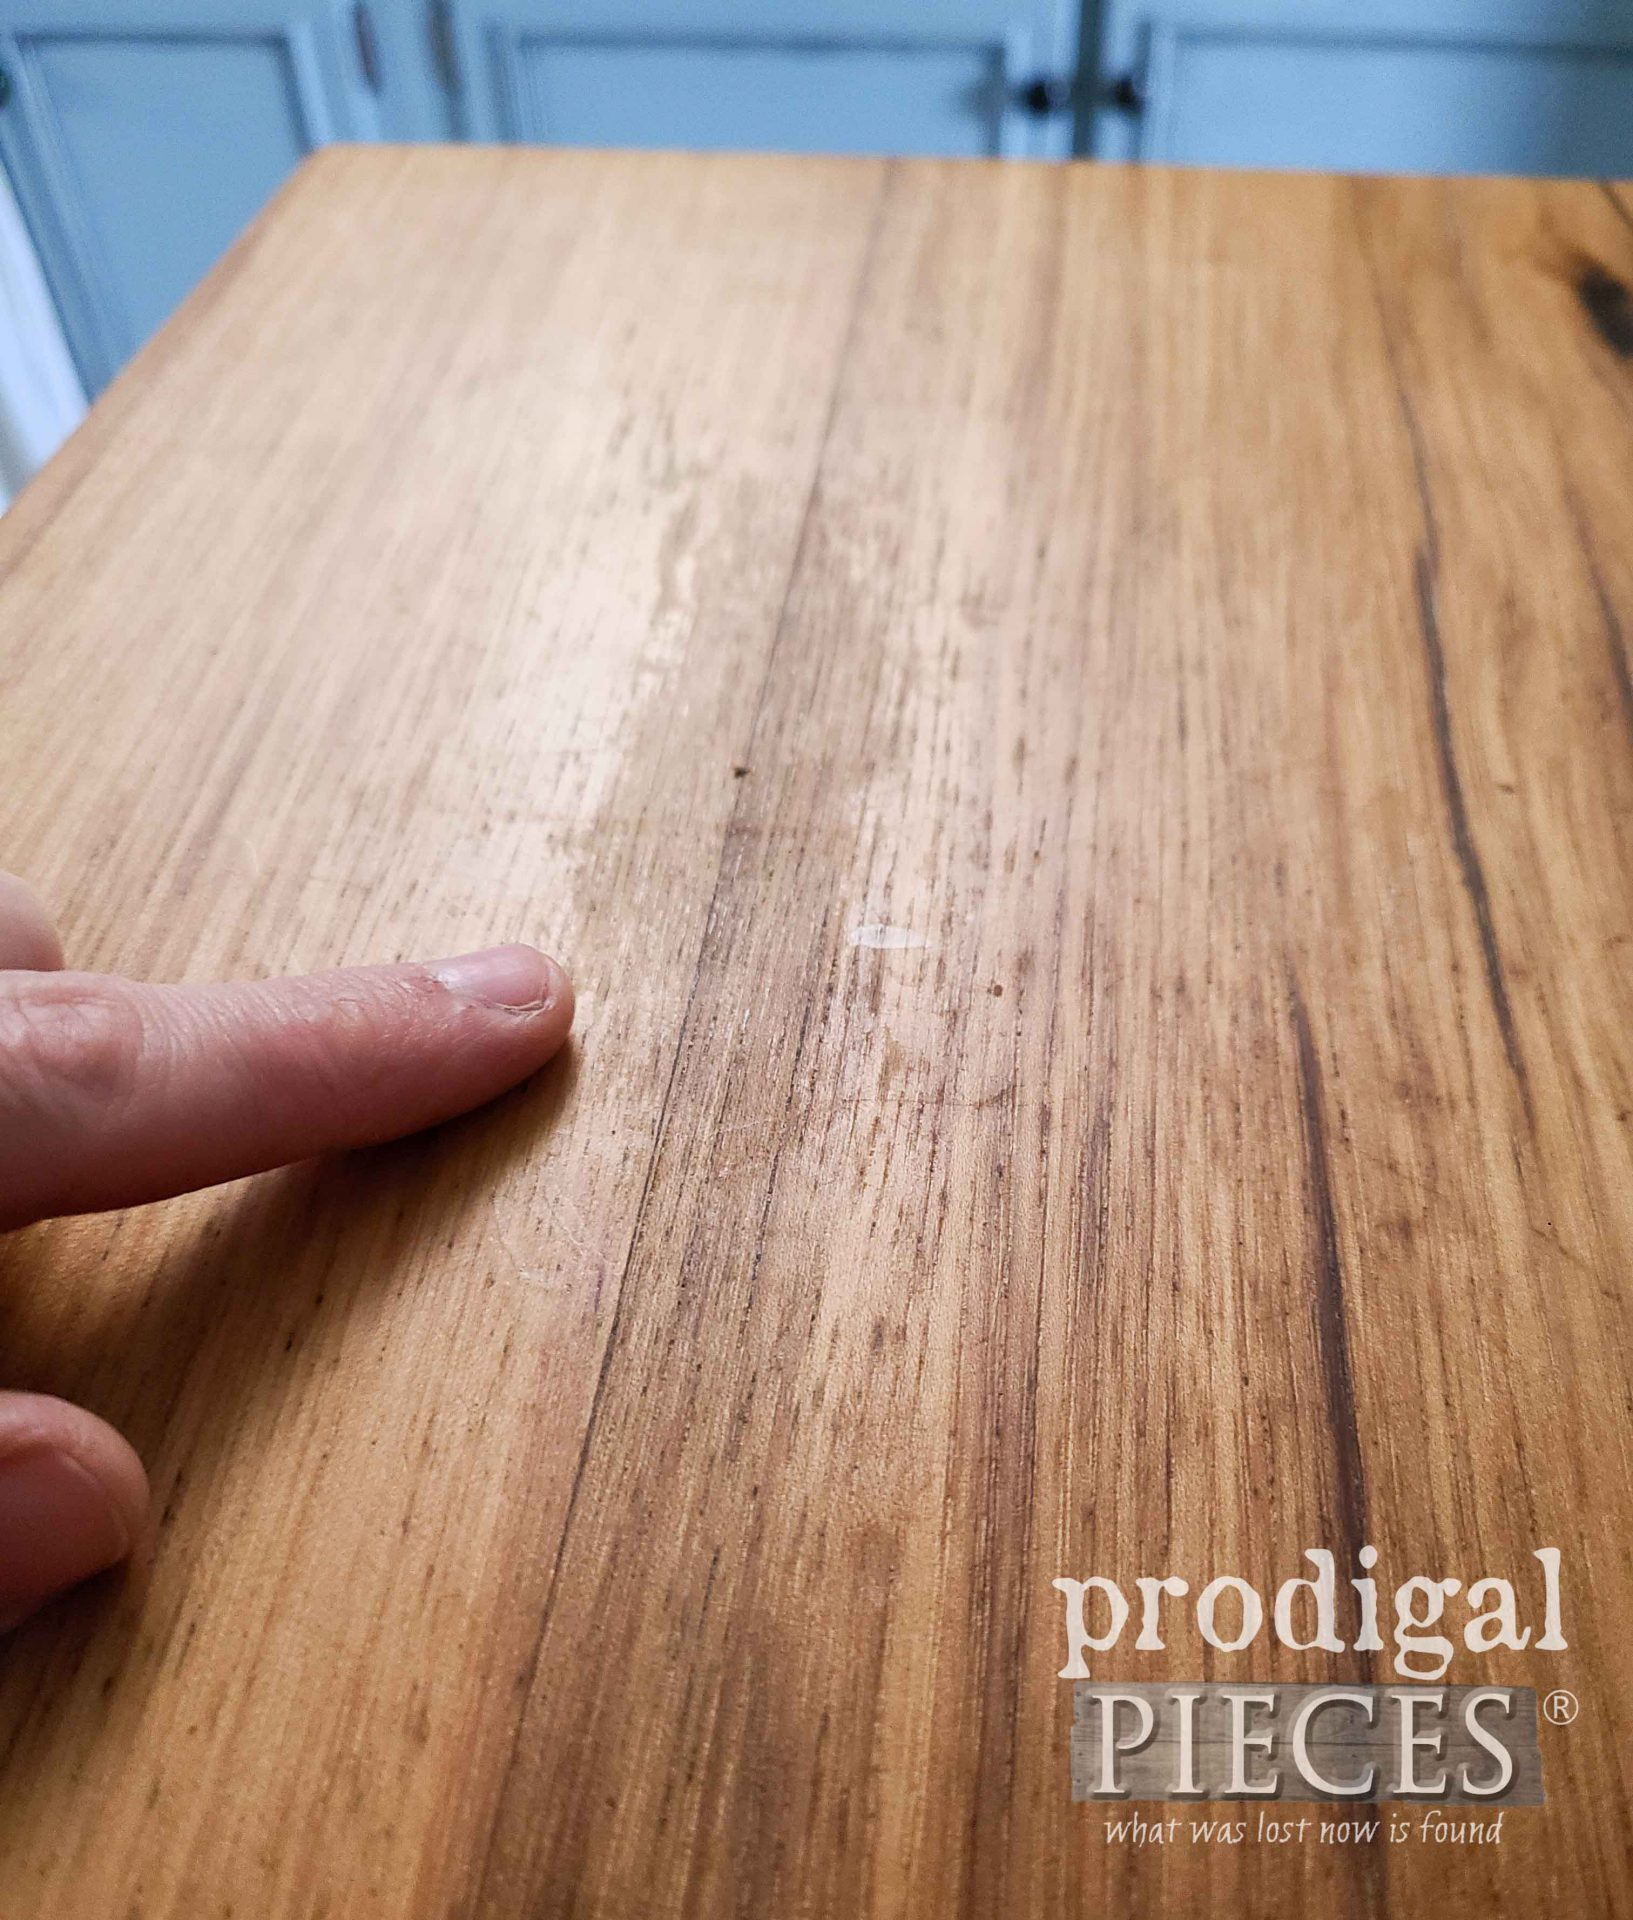 Wood Countertop Damage | prodigalpieces.com #prodigalpieces #home #kitchen #farmhouse